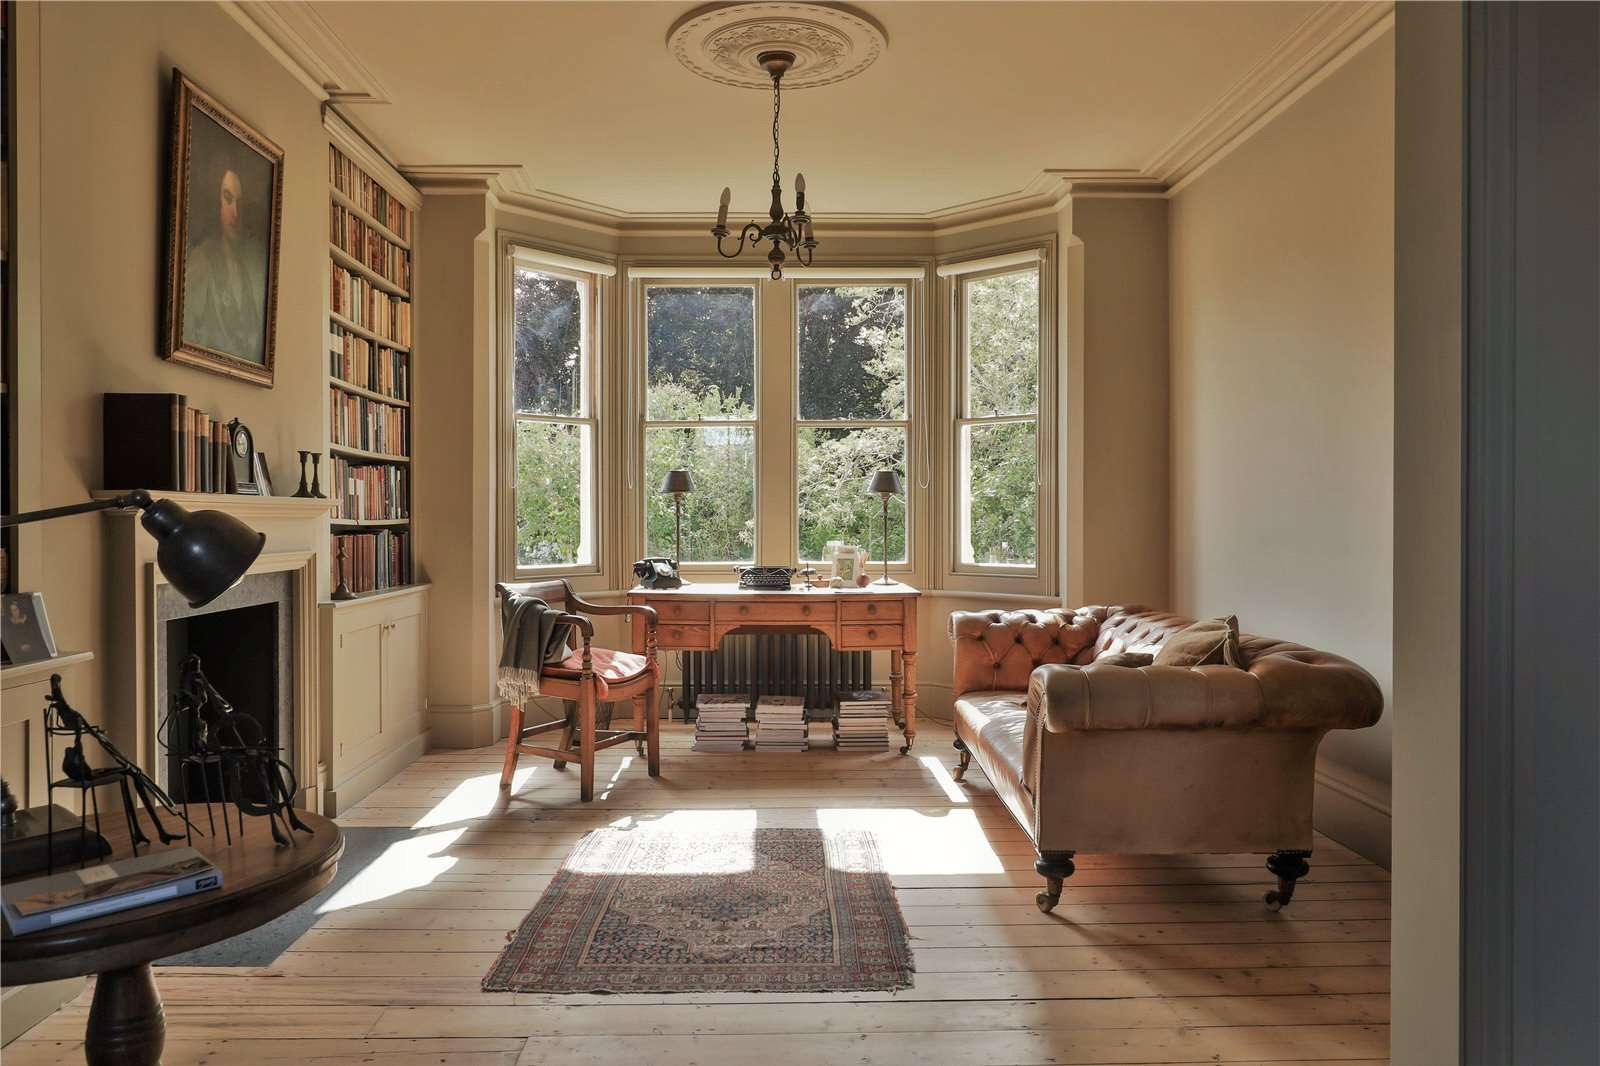 An elegantly-proportioned Victorian house on Woodstock Road in Oxford - Image Gallery 03 - Living Room